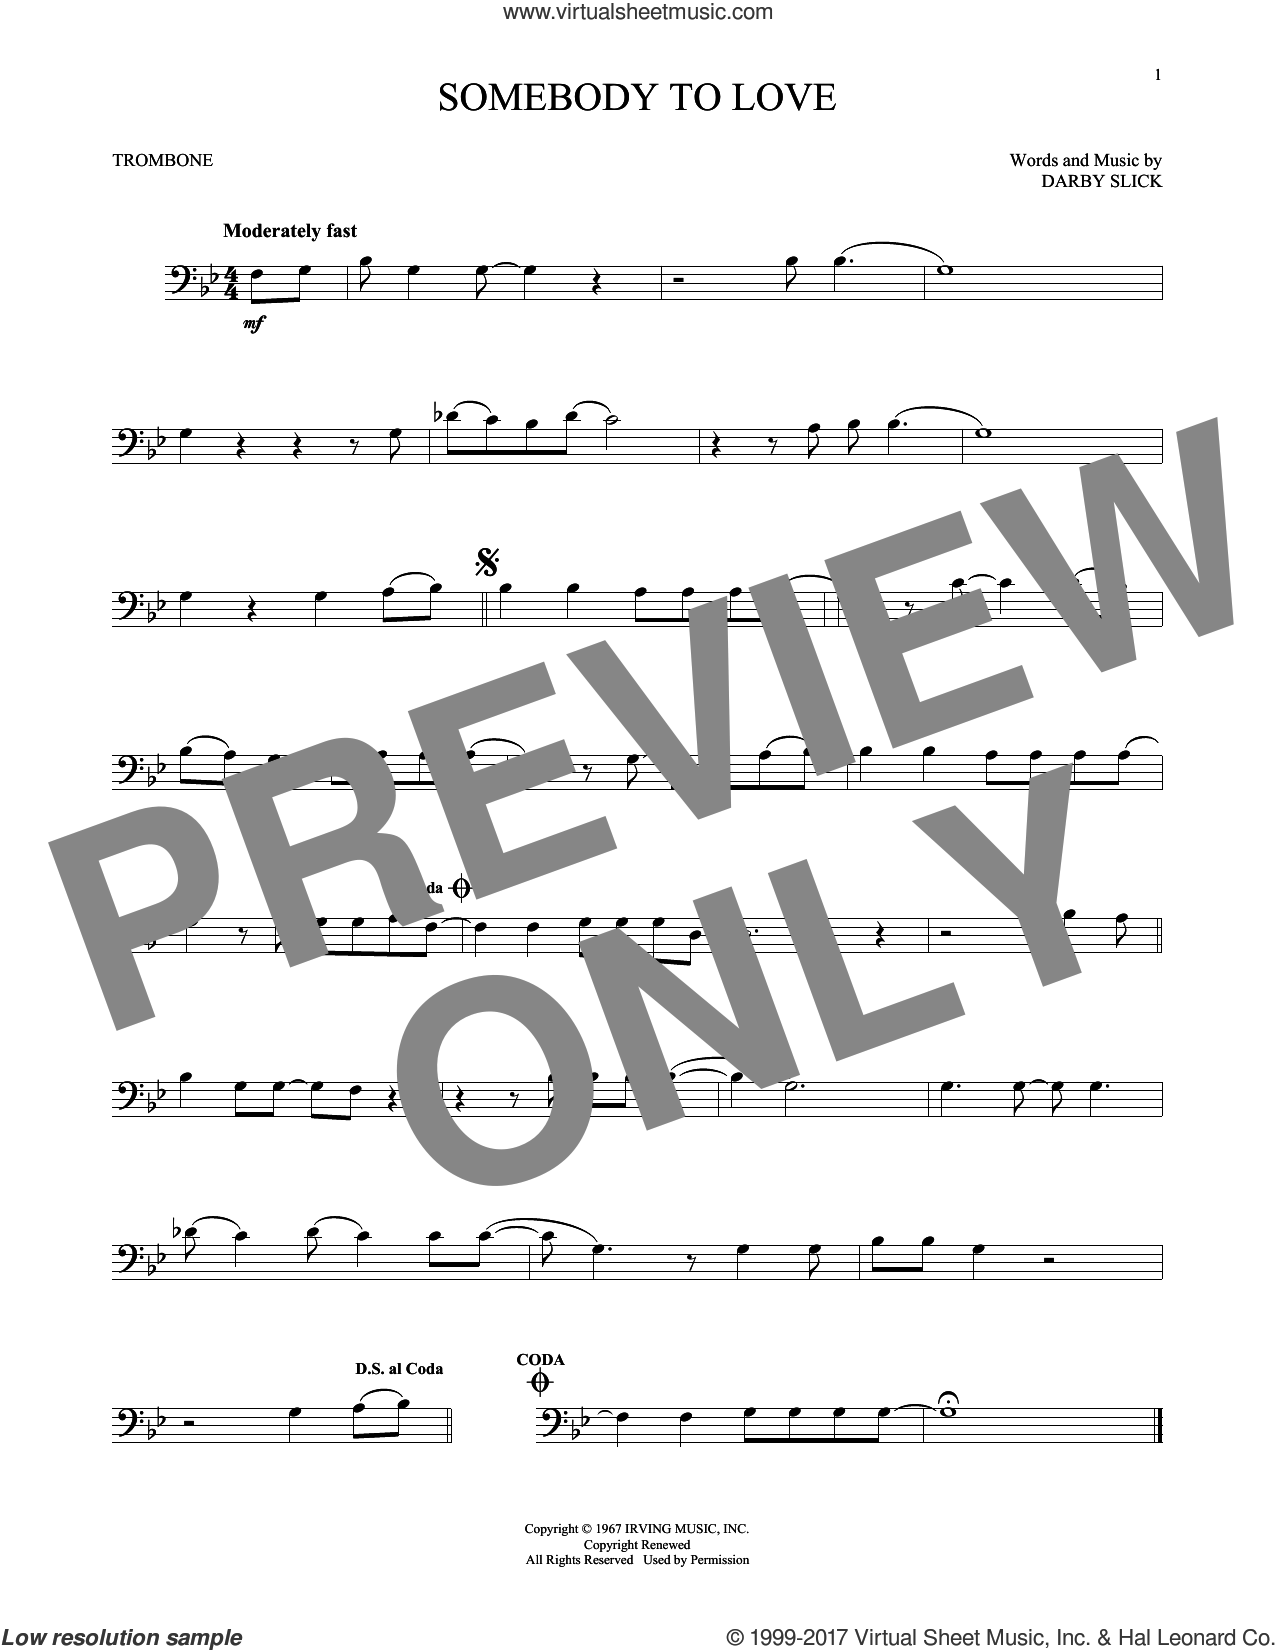 Somebody To Love sheet music for trombone solo by Jefferson Airplane and Darby Slick, intermediate skill level